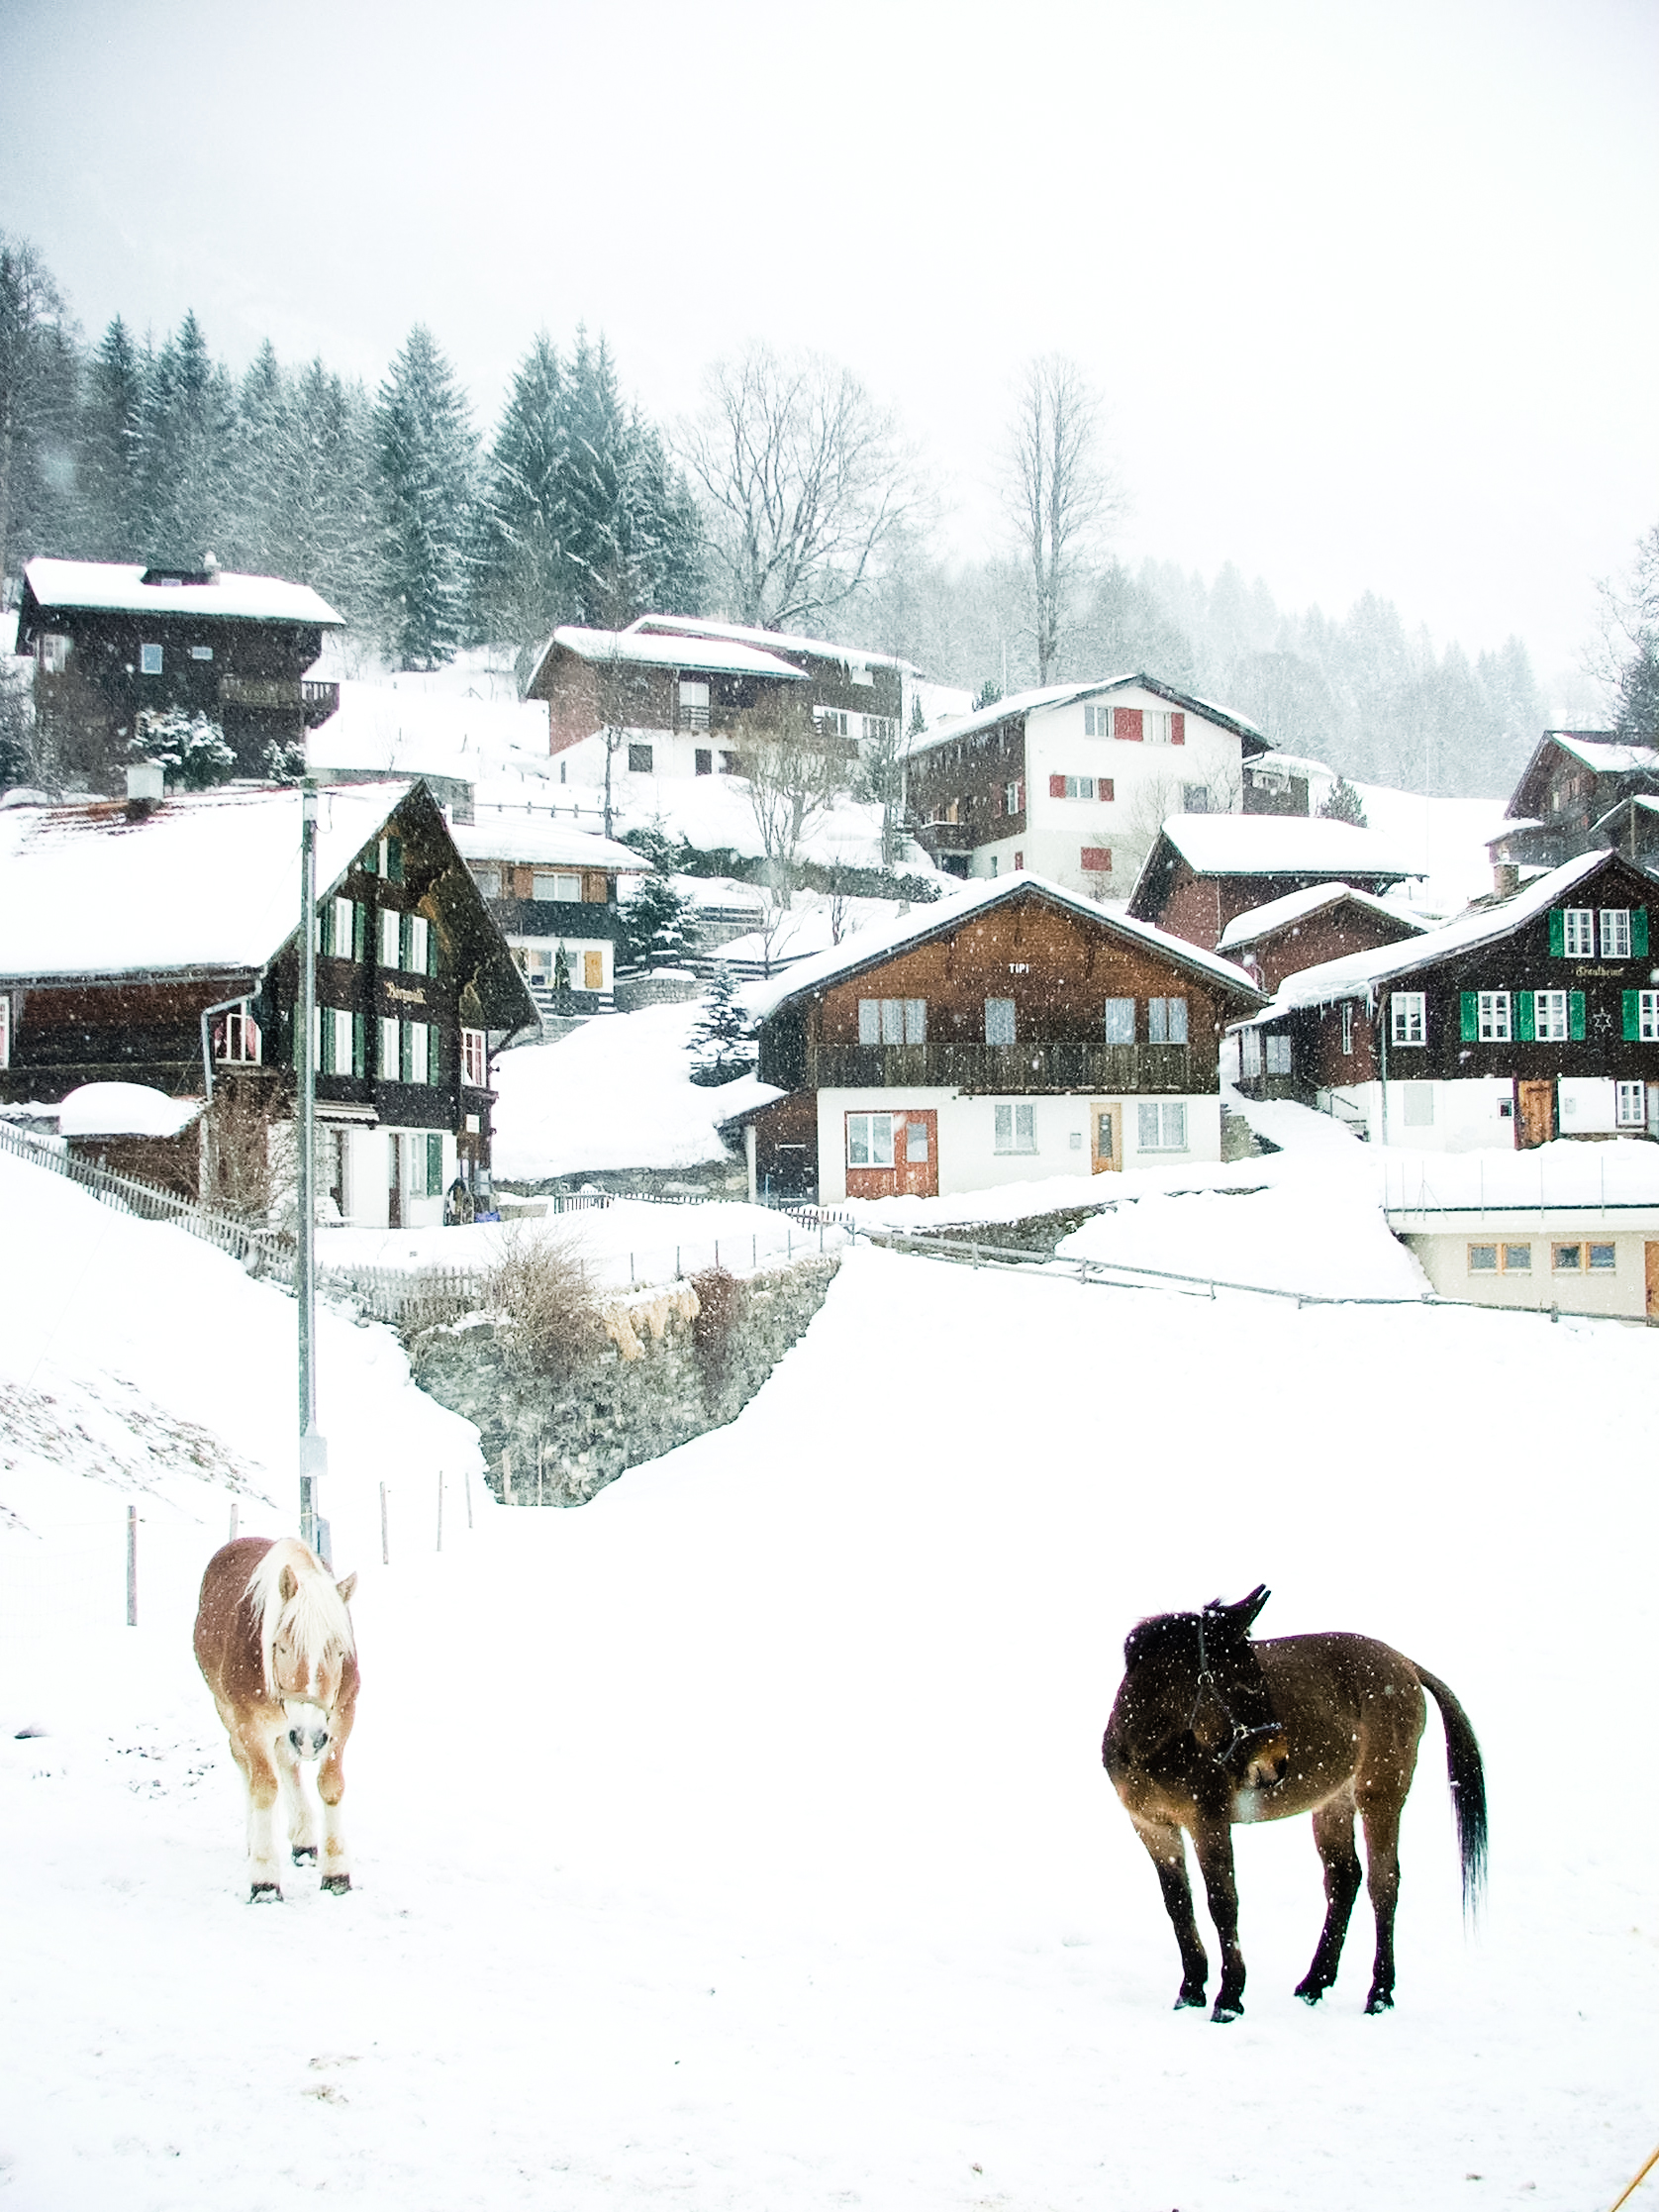 Snowy village and horses photo